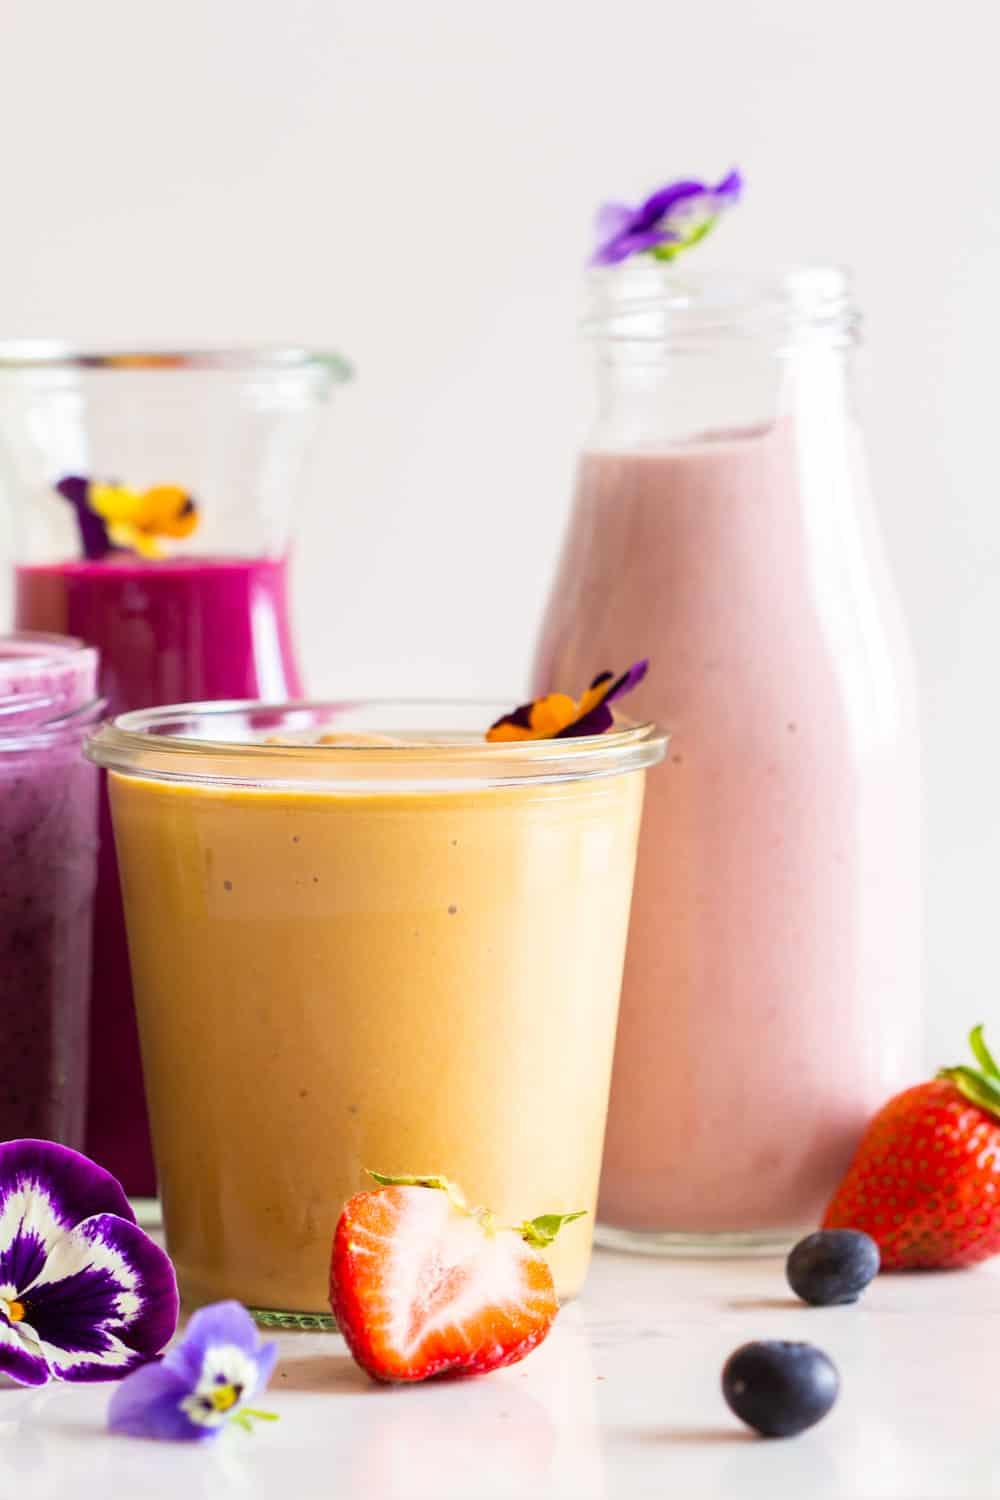 Healthy Breakfast Smoothie Recipes made with different colored fruits and vegetables in glass jars.